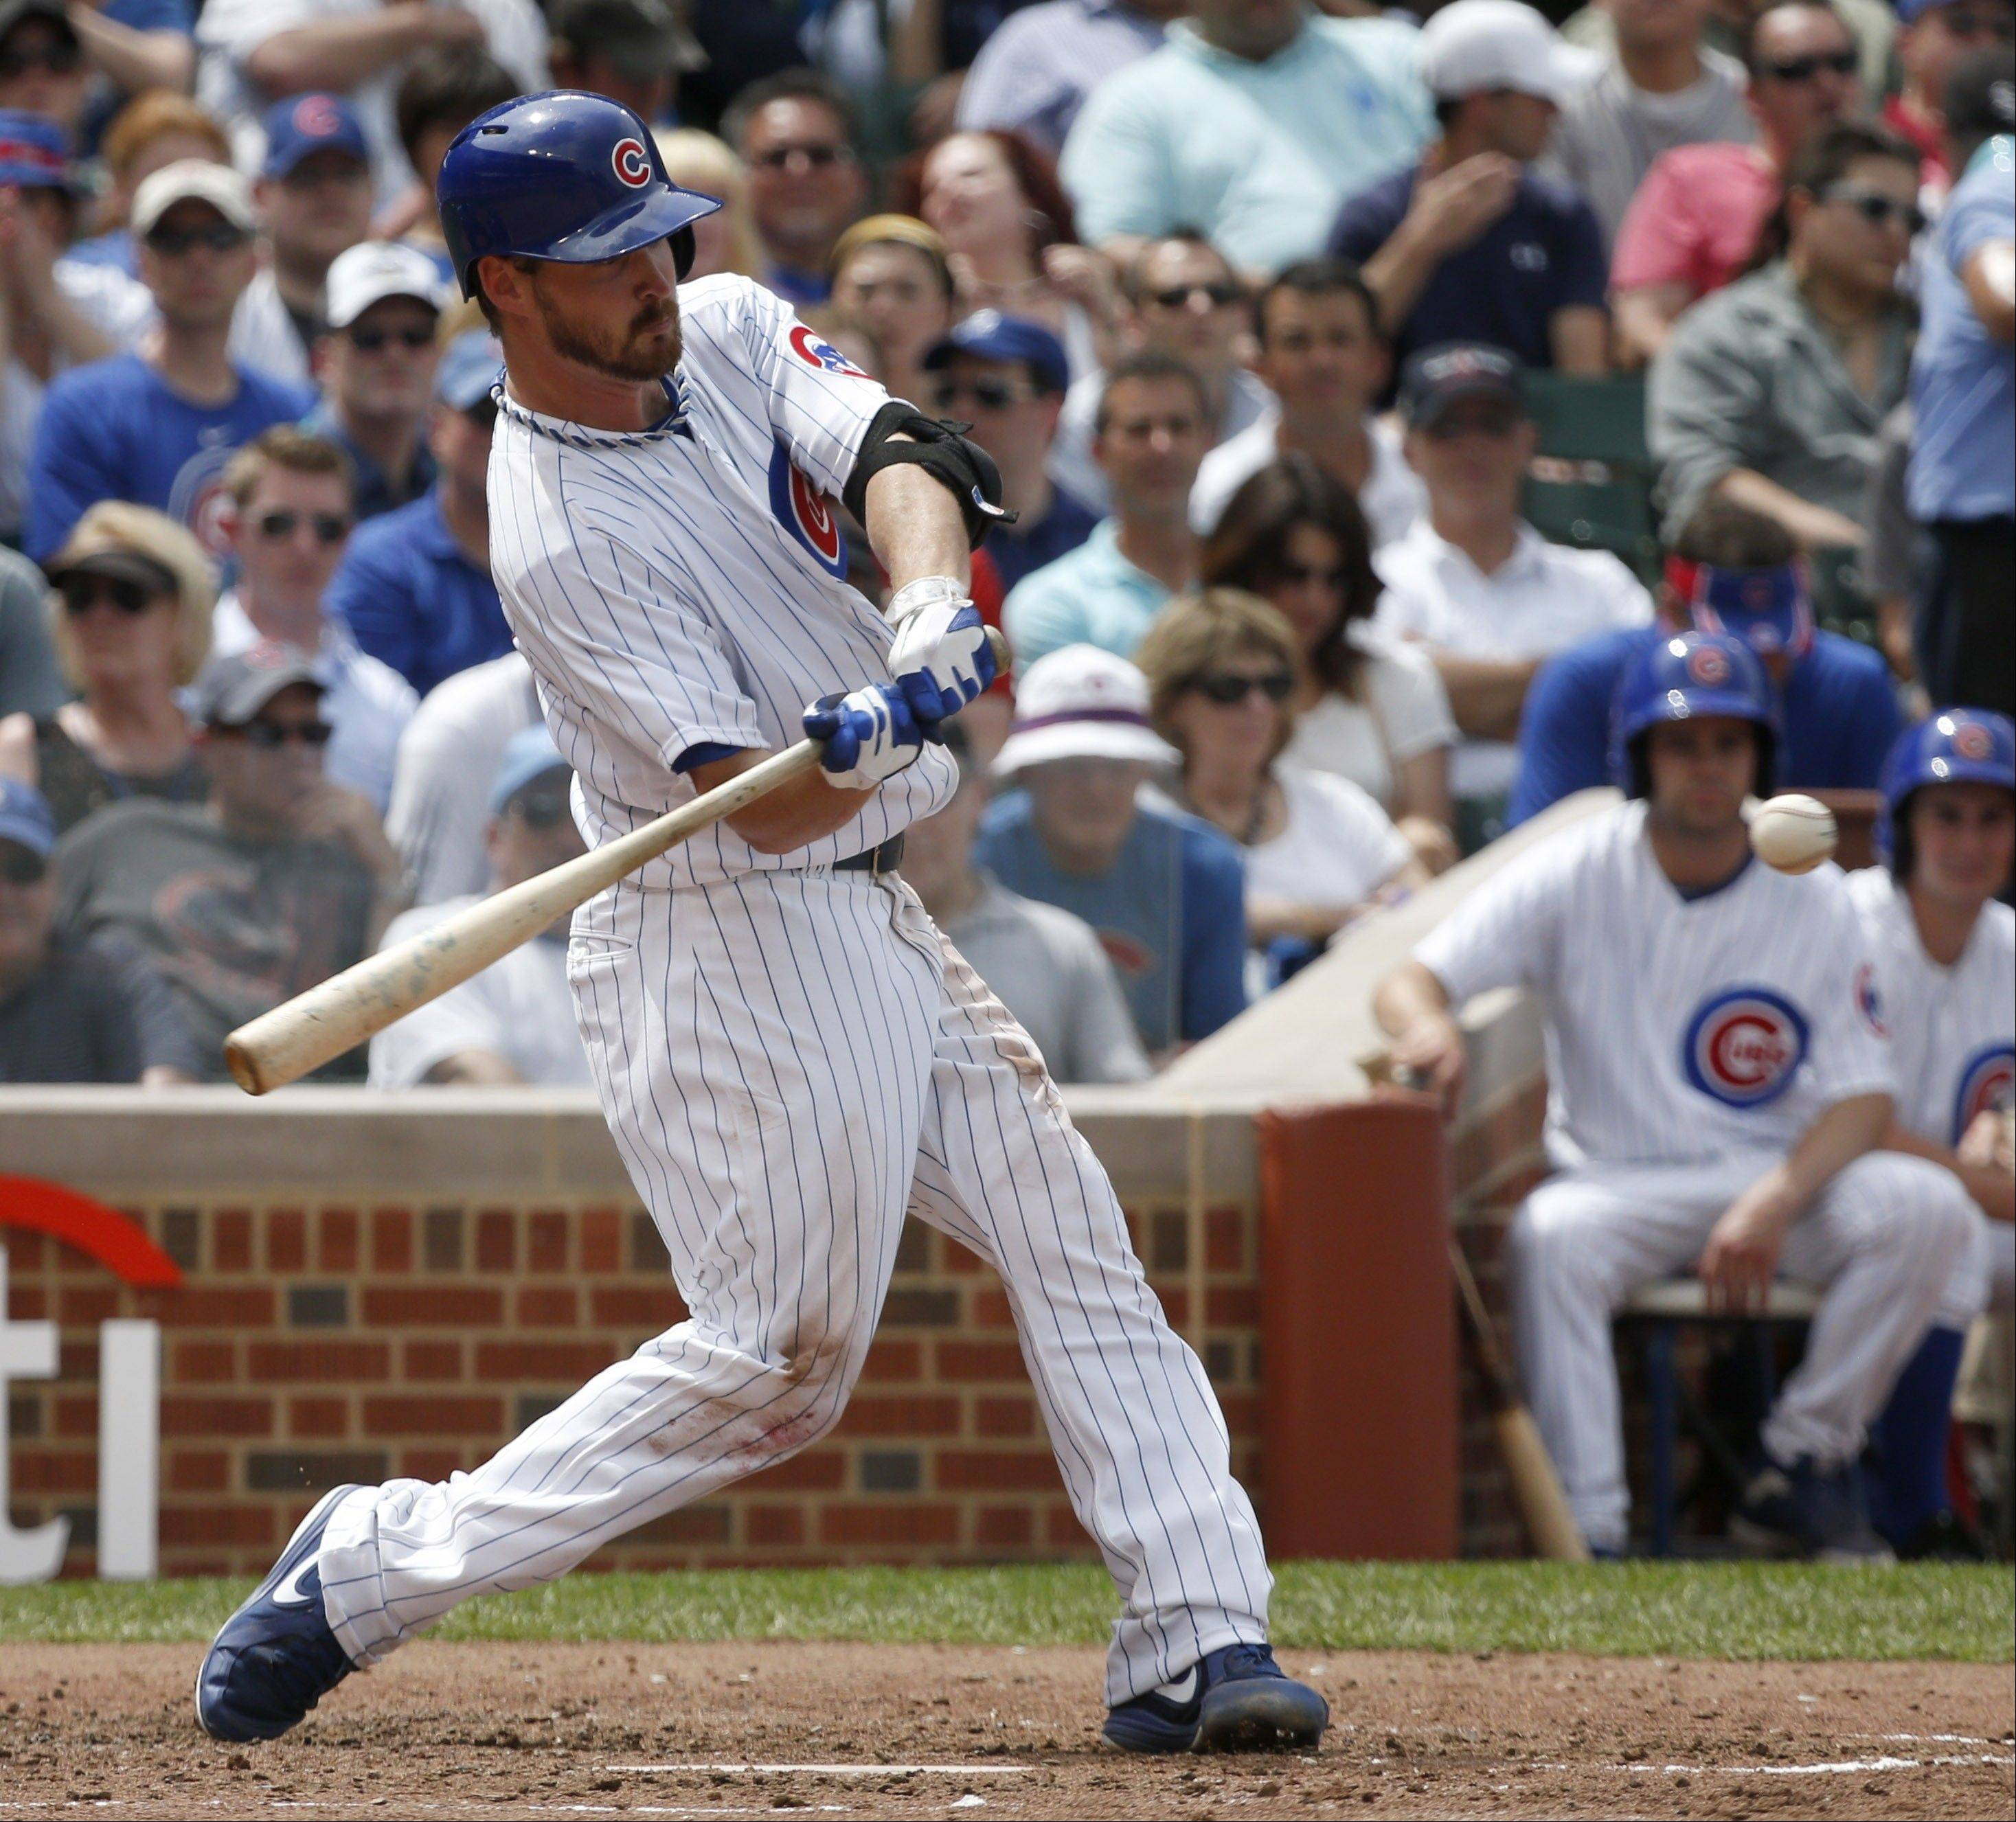 Chicago Cubs' Travis Wood hits a grand slam off Chicago White Sox starting pitcher Jake Peavy during the fourth inning of an interleague baseball game Thursday, May 30, 2013, in Chicago. The Cubs Darwin Barney, Luis Valbuena, and Welington Castillo also scored on the hit.